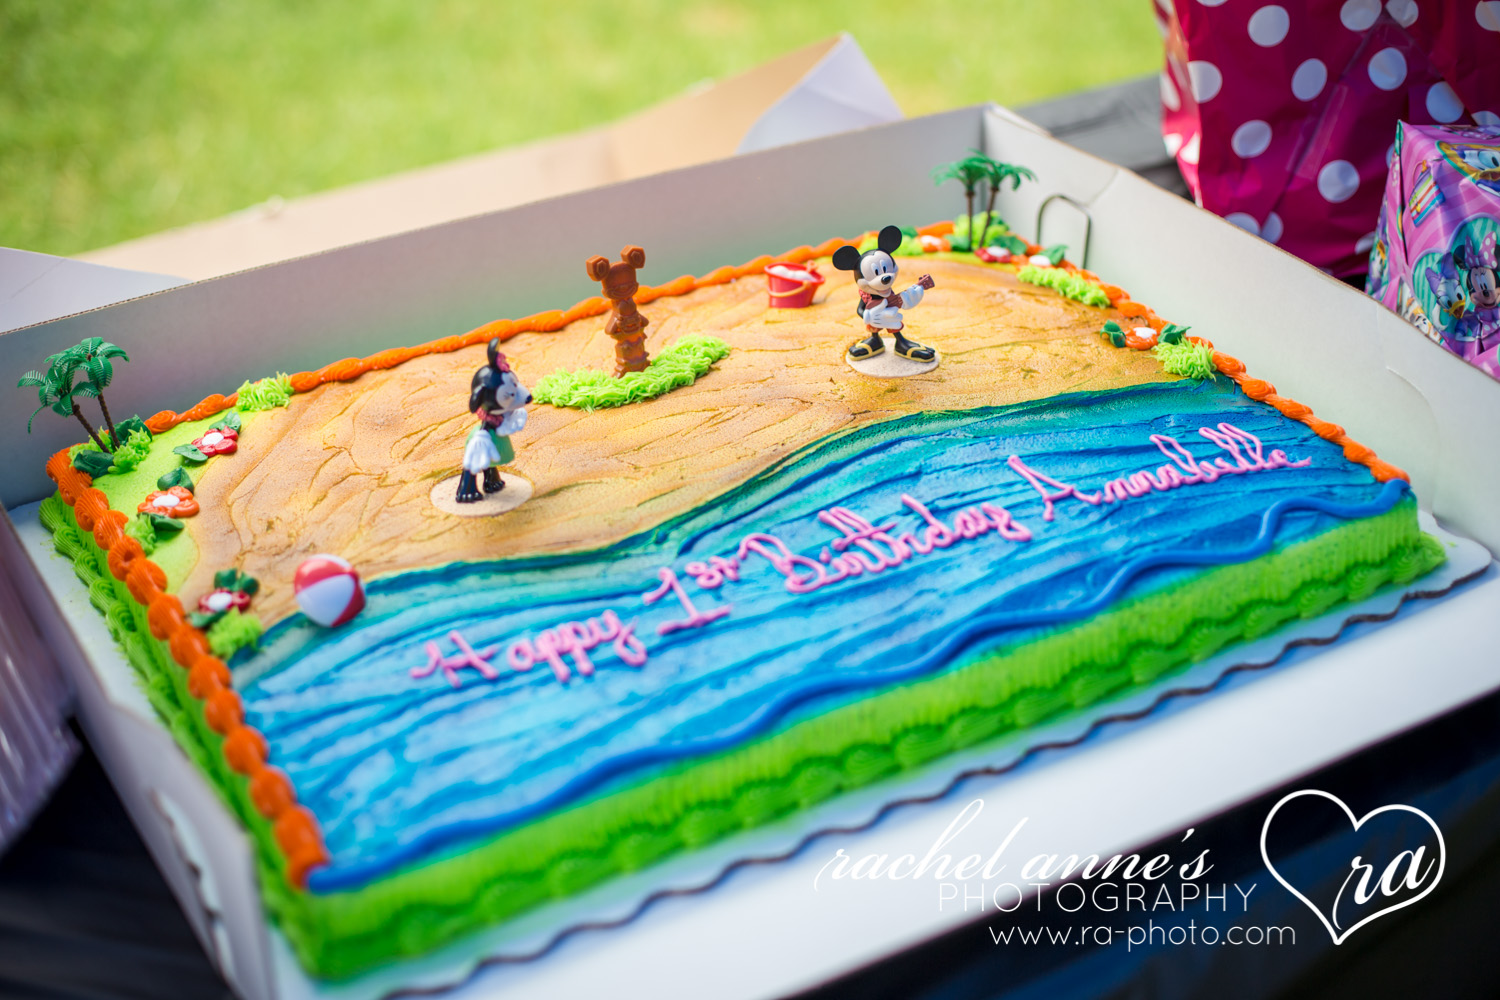 015-CESA-FIRST-BIRTHDAY-PARTY-PHOTOGRAPHY.jpg